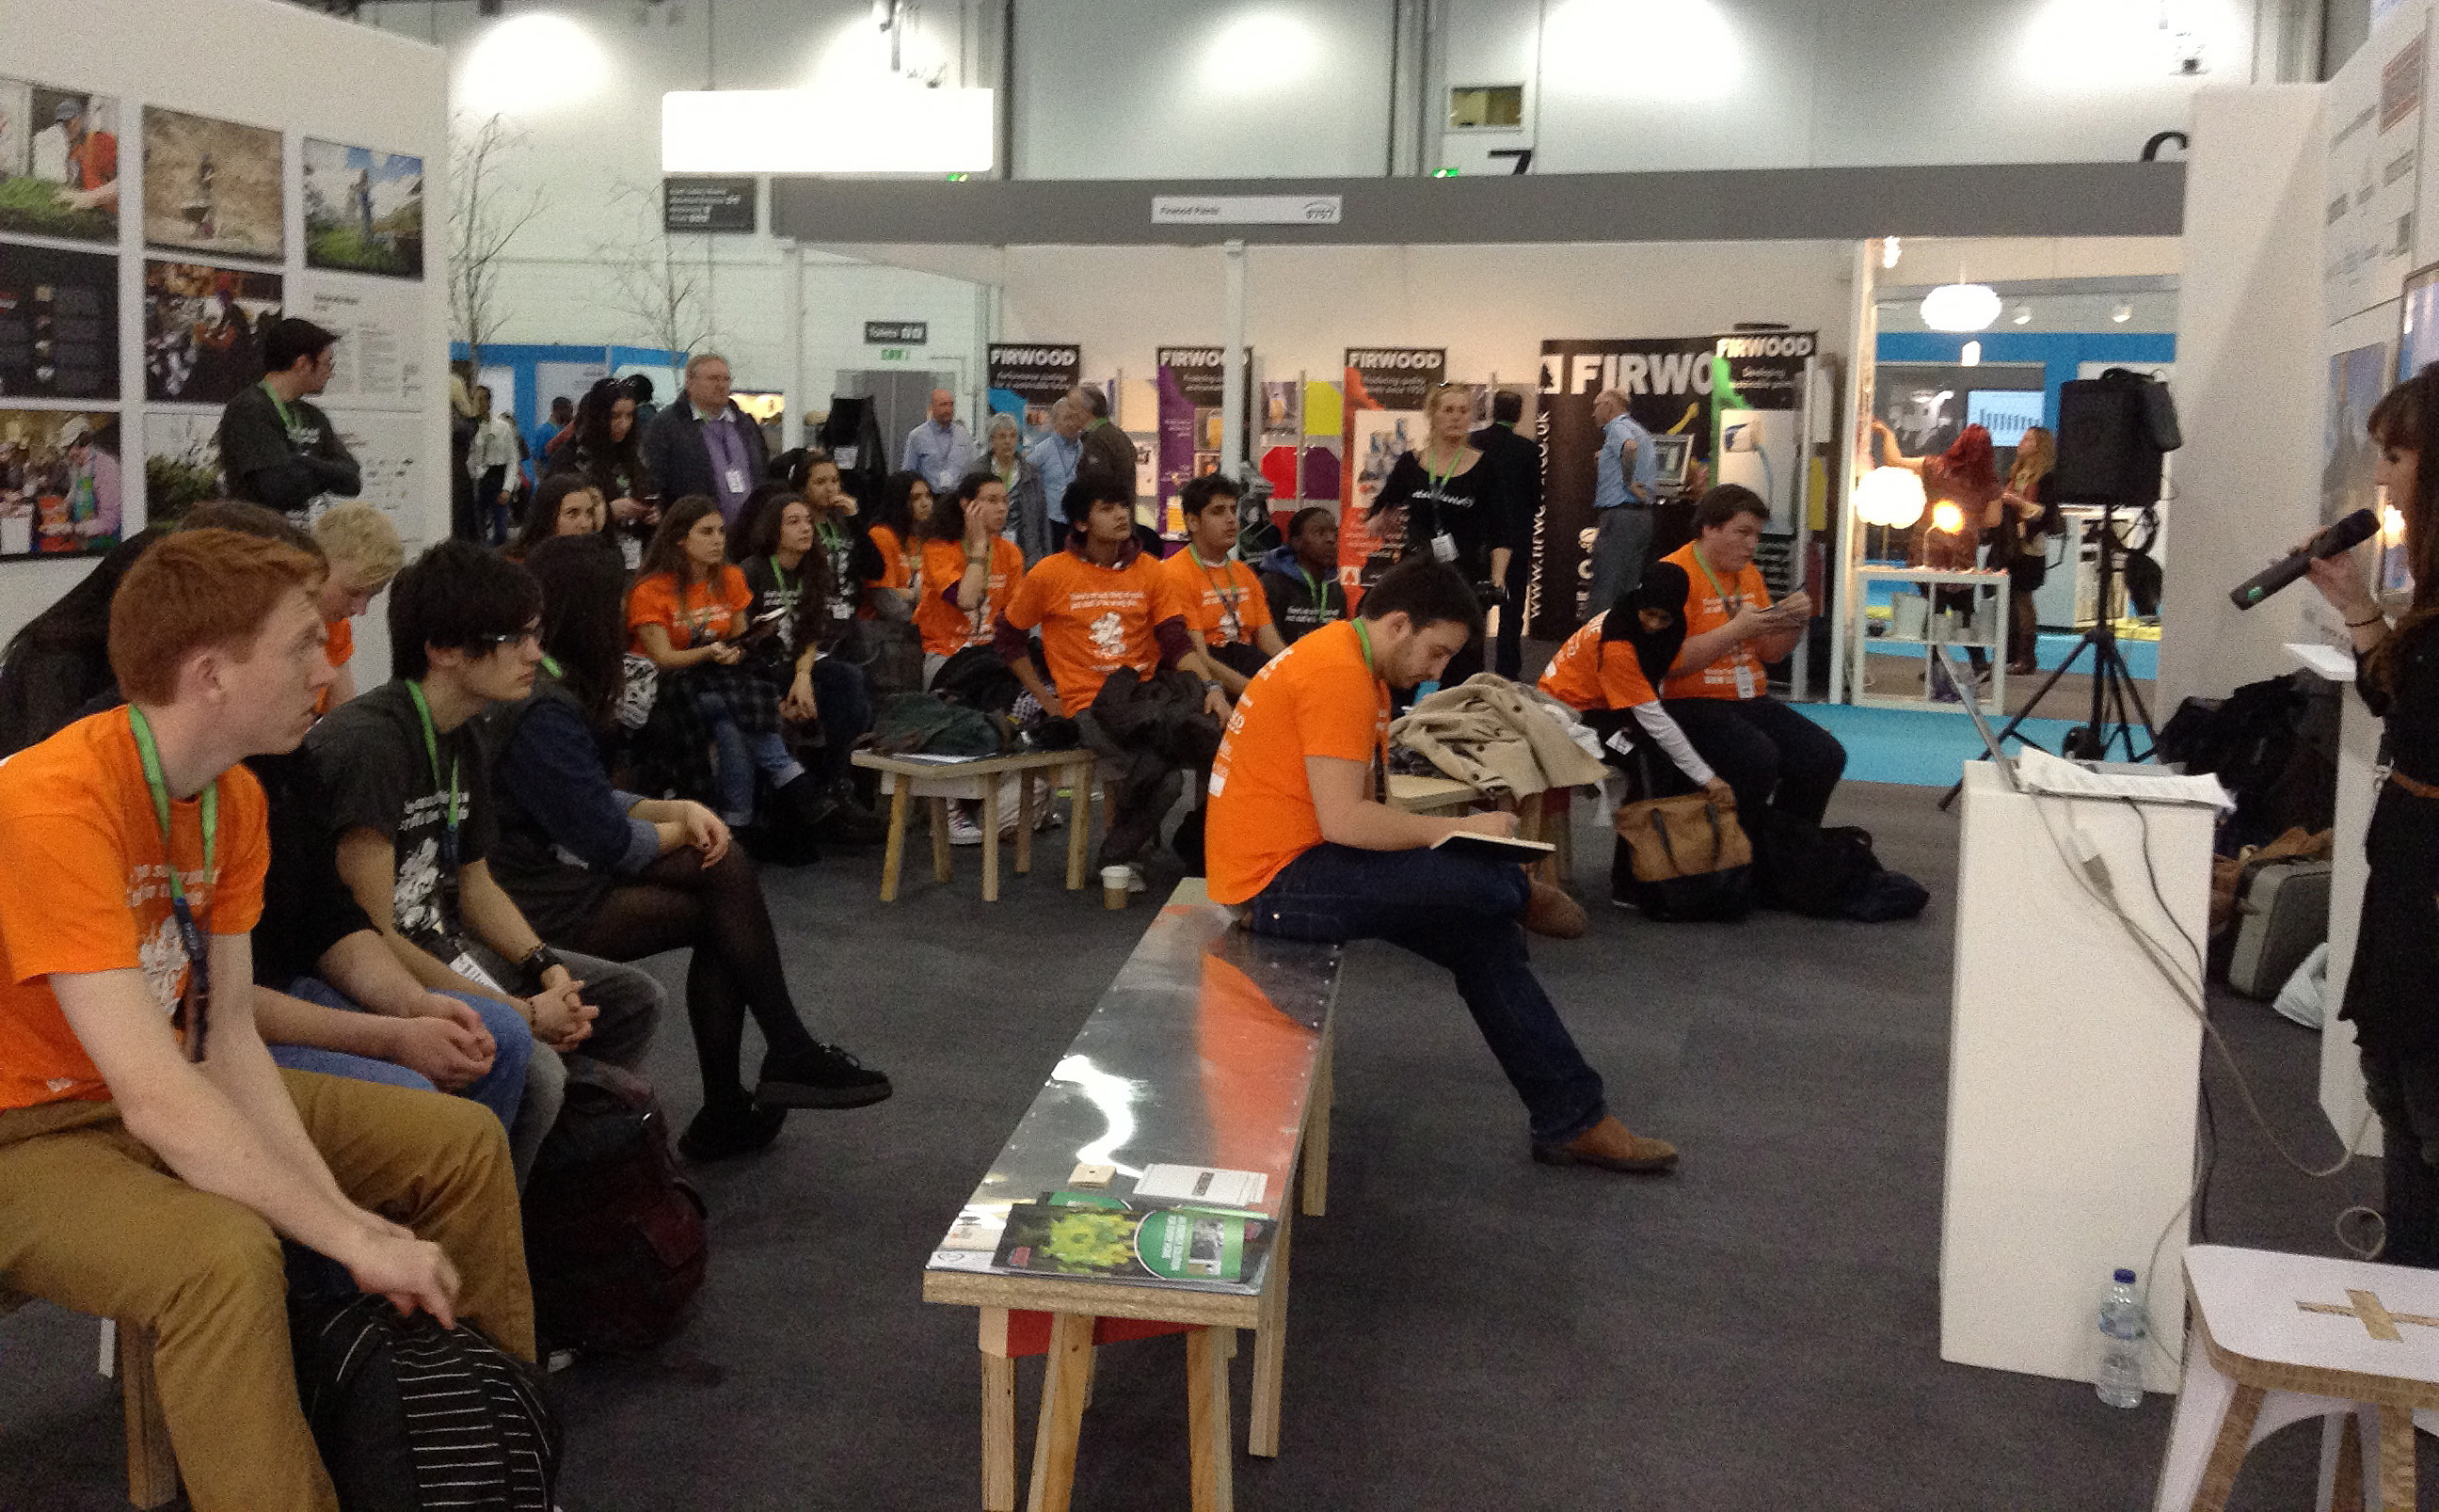 Seating made for the WasteZone at Ecobuild 2013 by students at the University of Brighton Faculty of Arts.